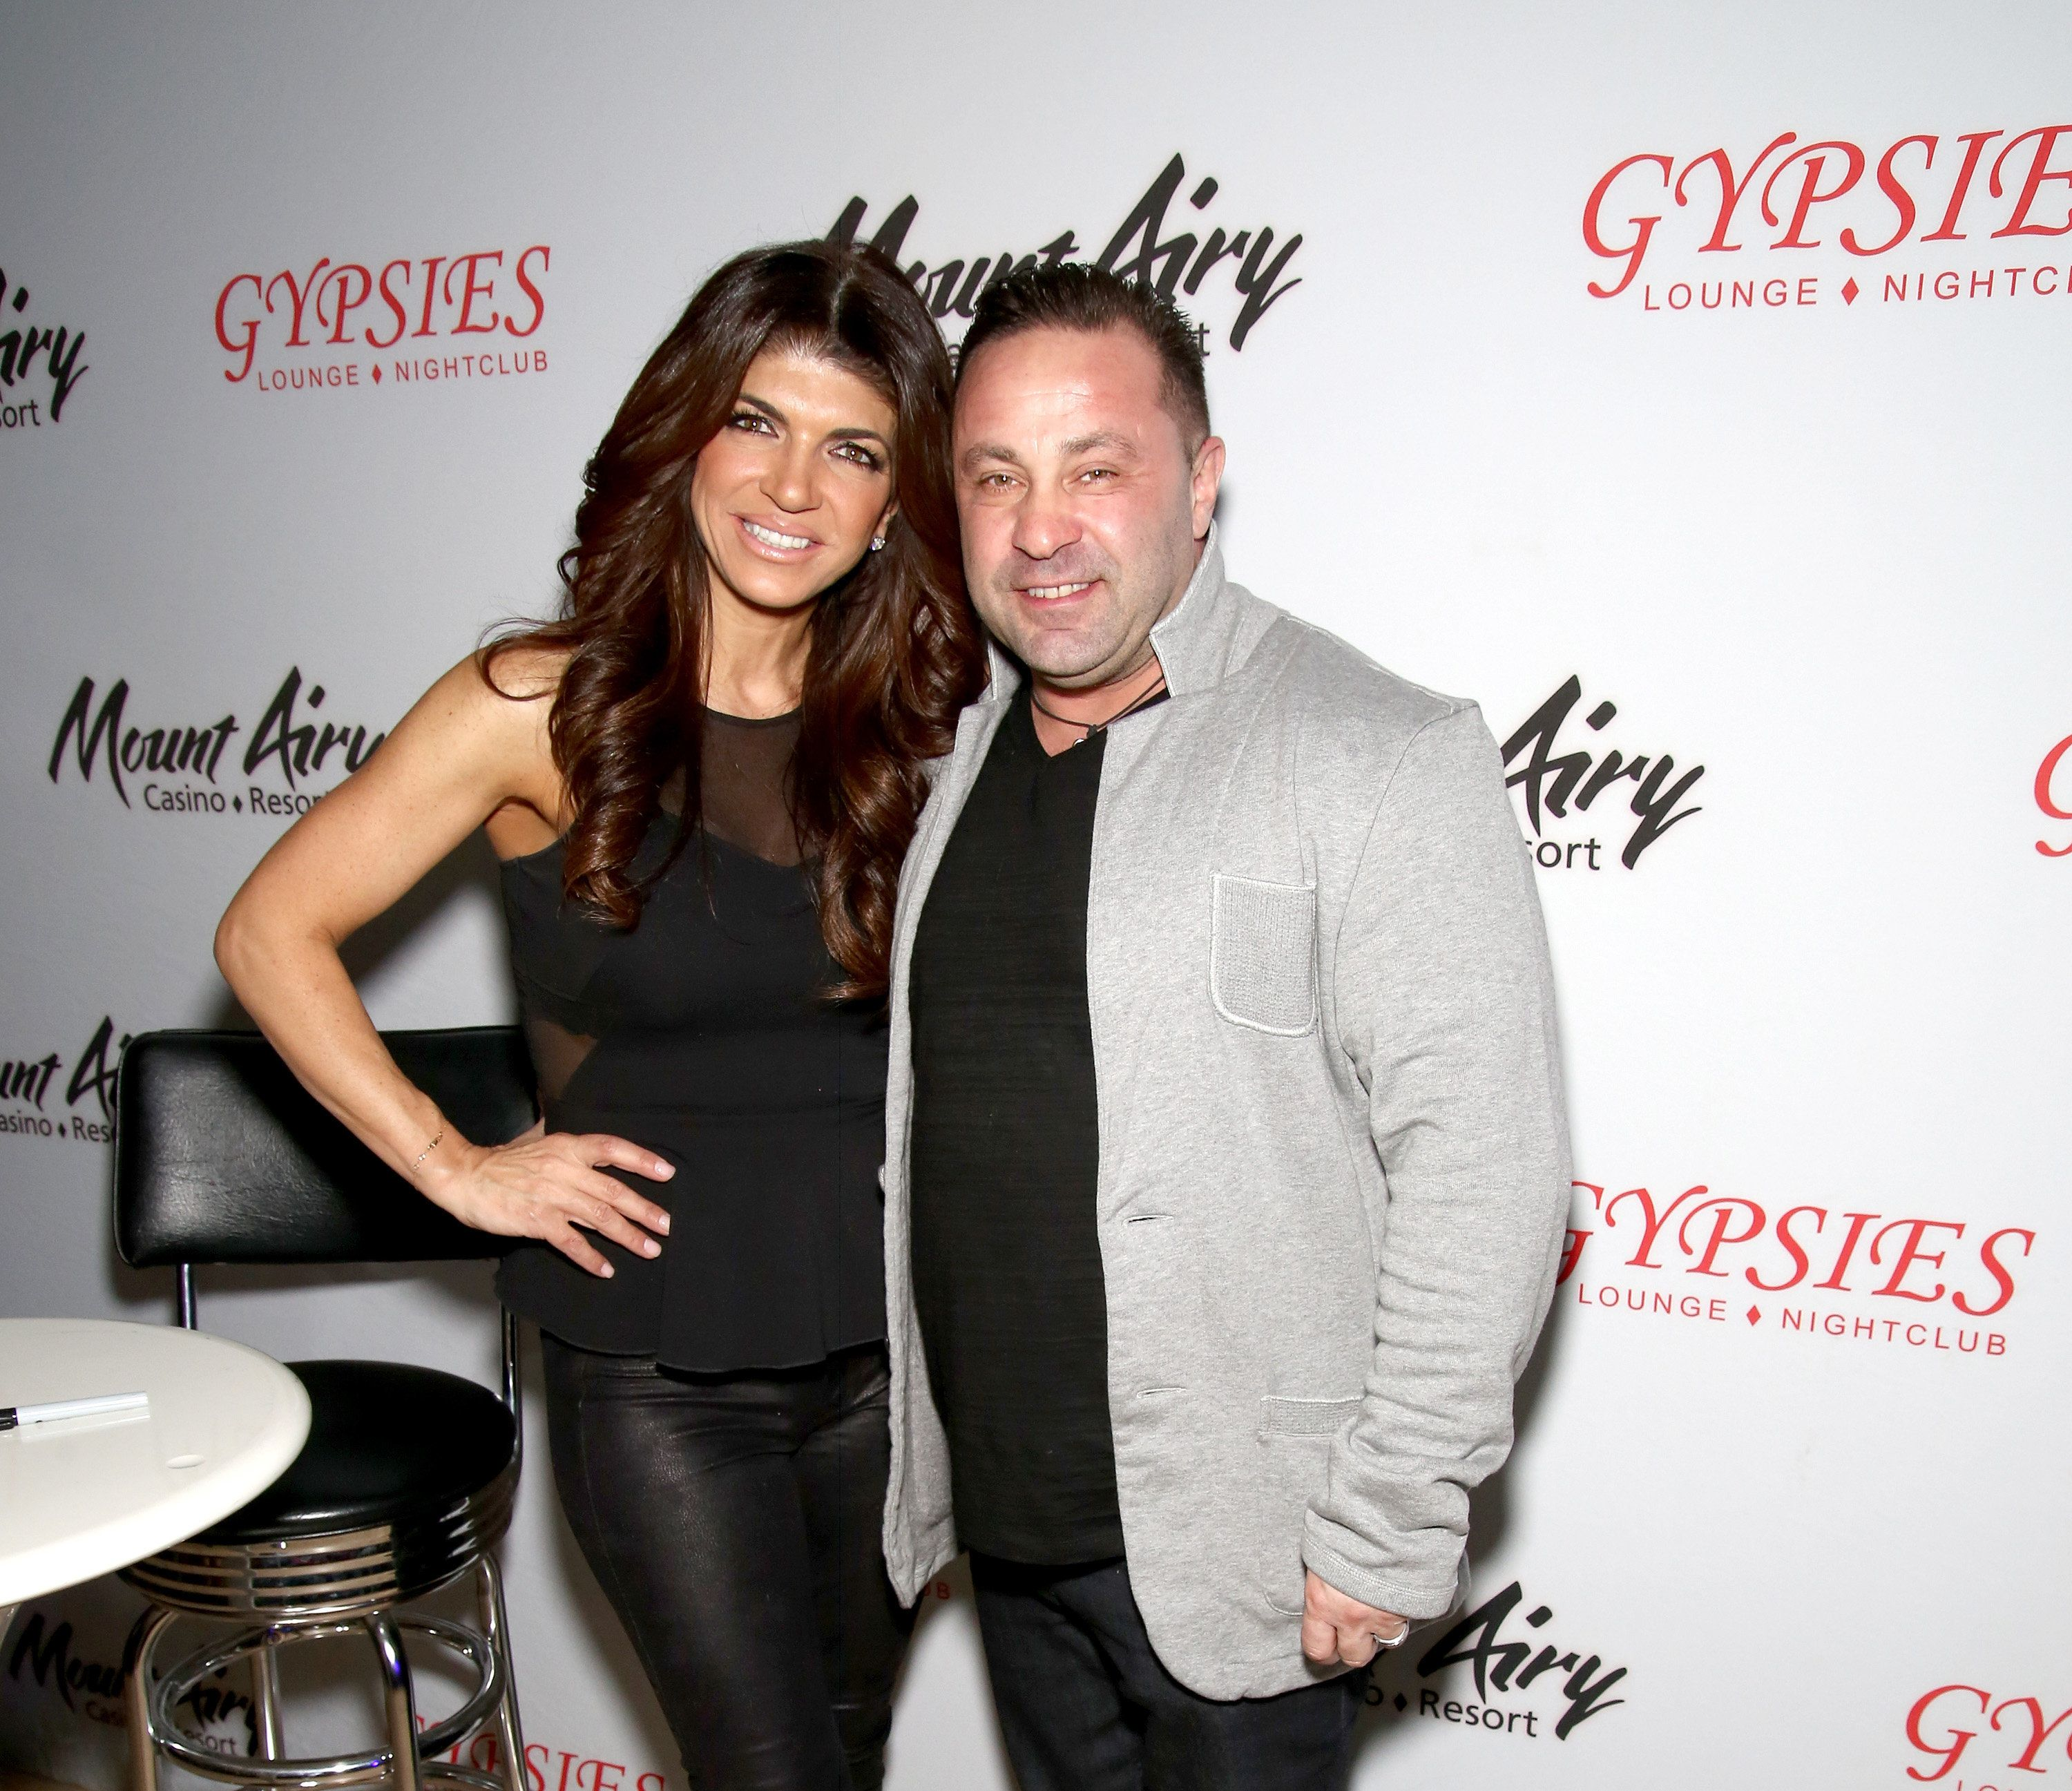 'Real Housewives of New Jersey' husband Joe Giudice to be deported